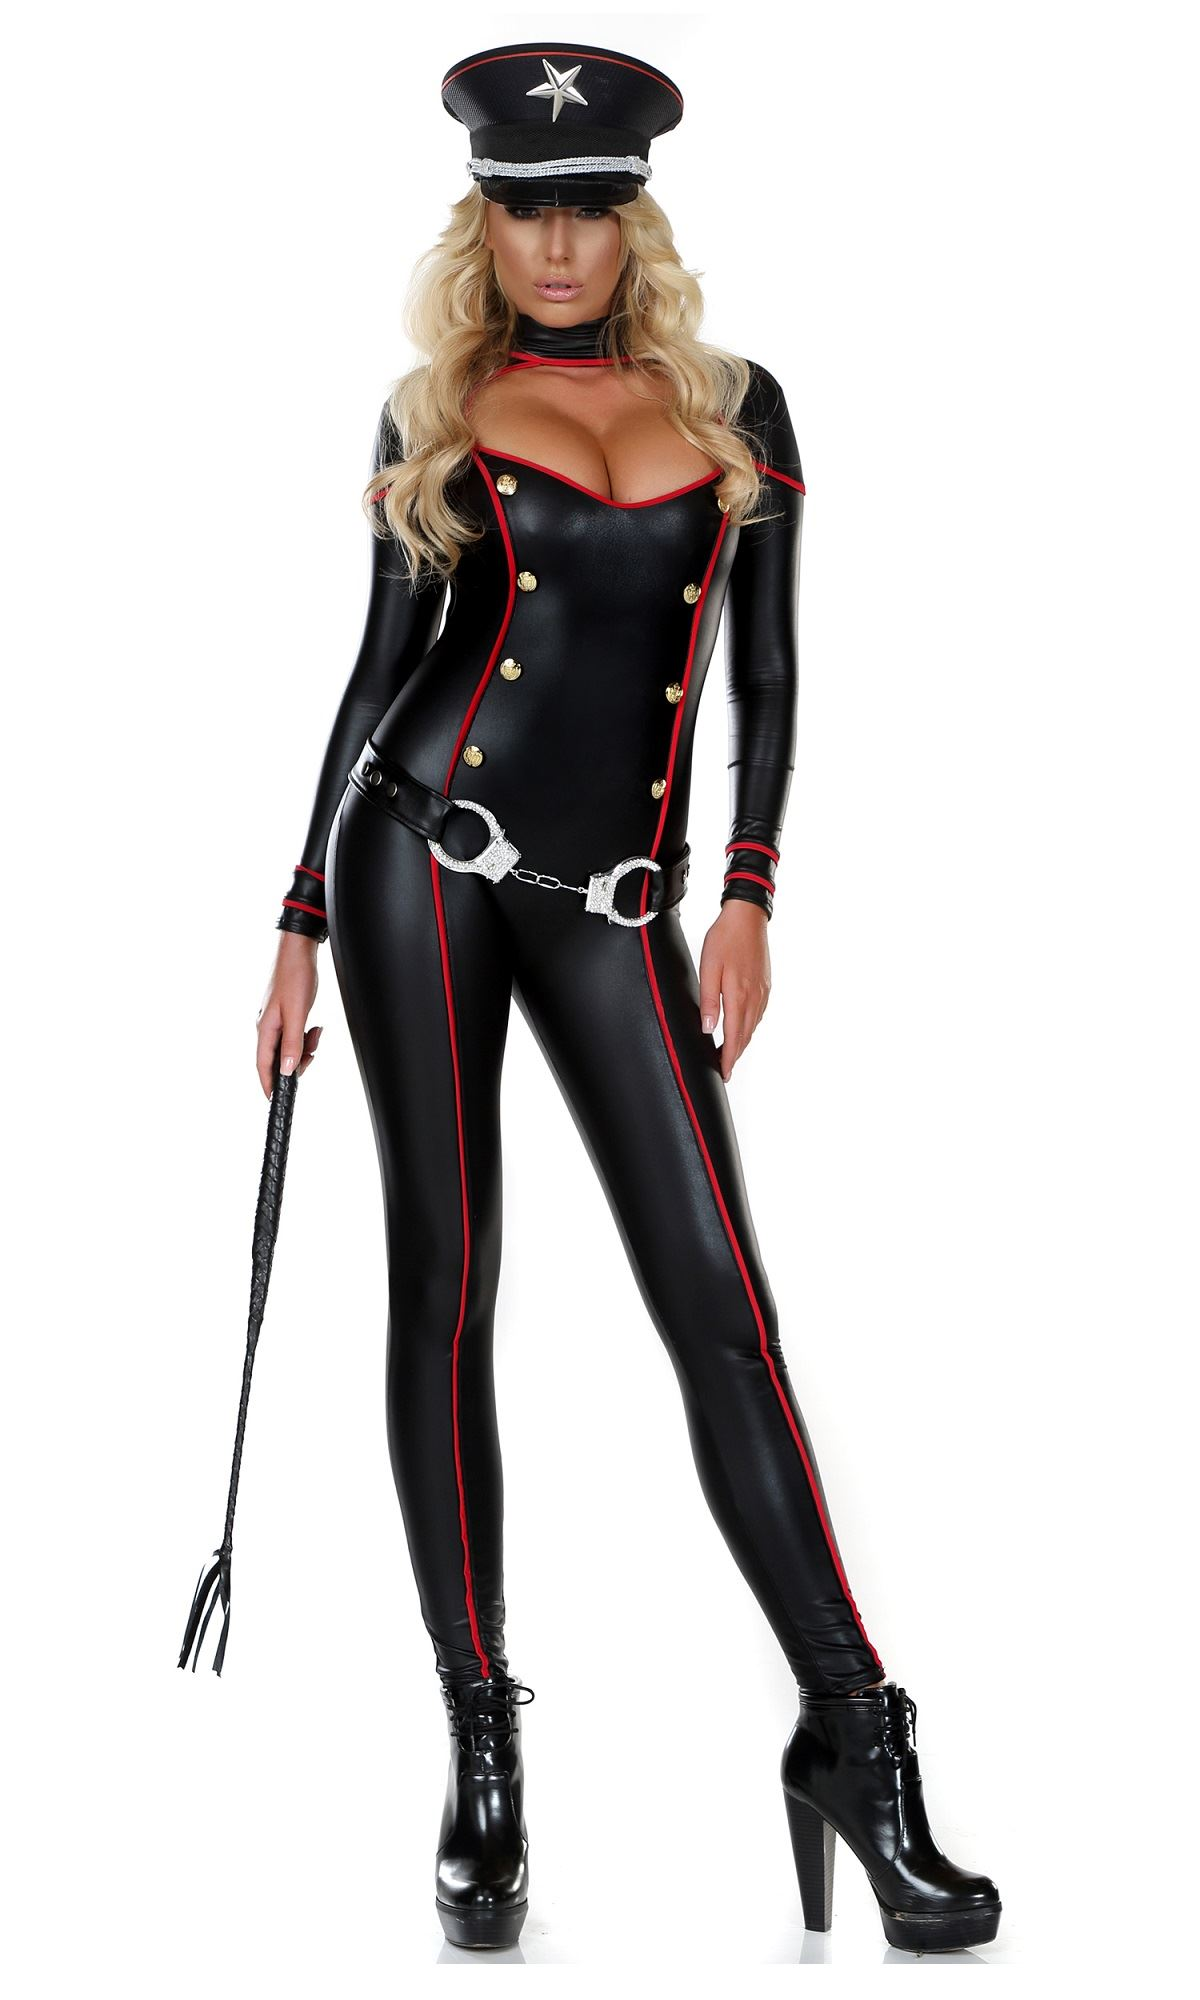 Adult Military Soldier Woman Catsuit Costume ...  sc 1 st  The Costume Land & Adult Military Soldier Woman Catsuit Costume | $67.99 | The Costume Land